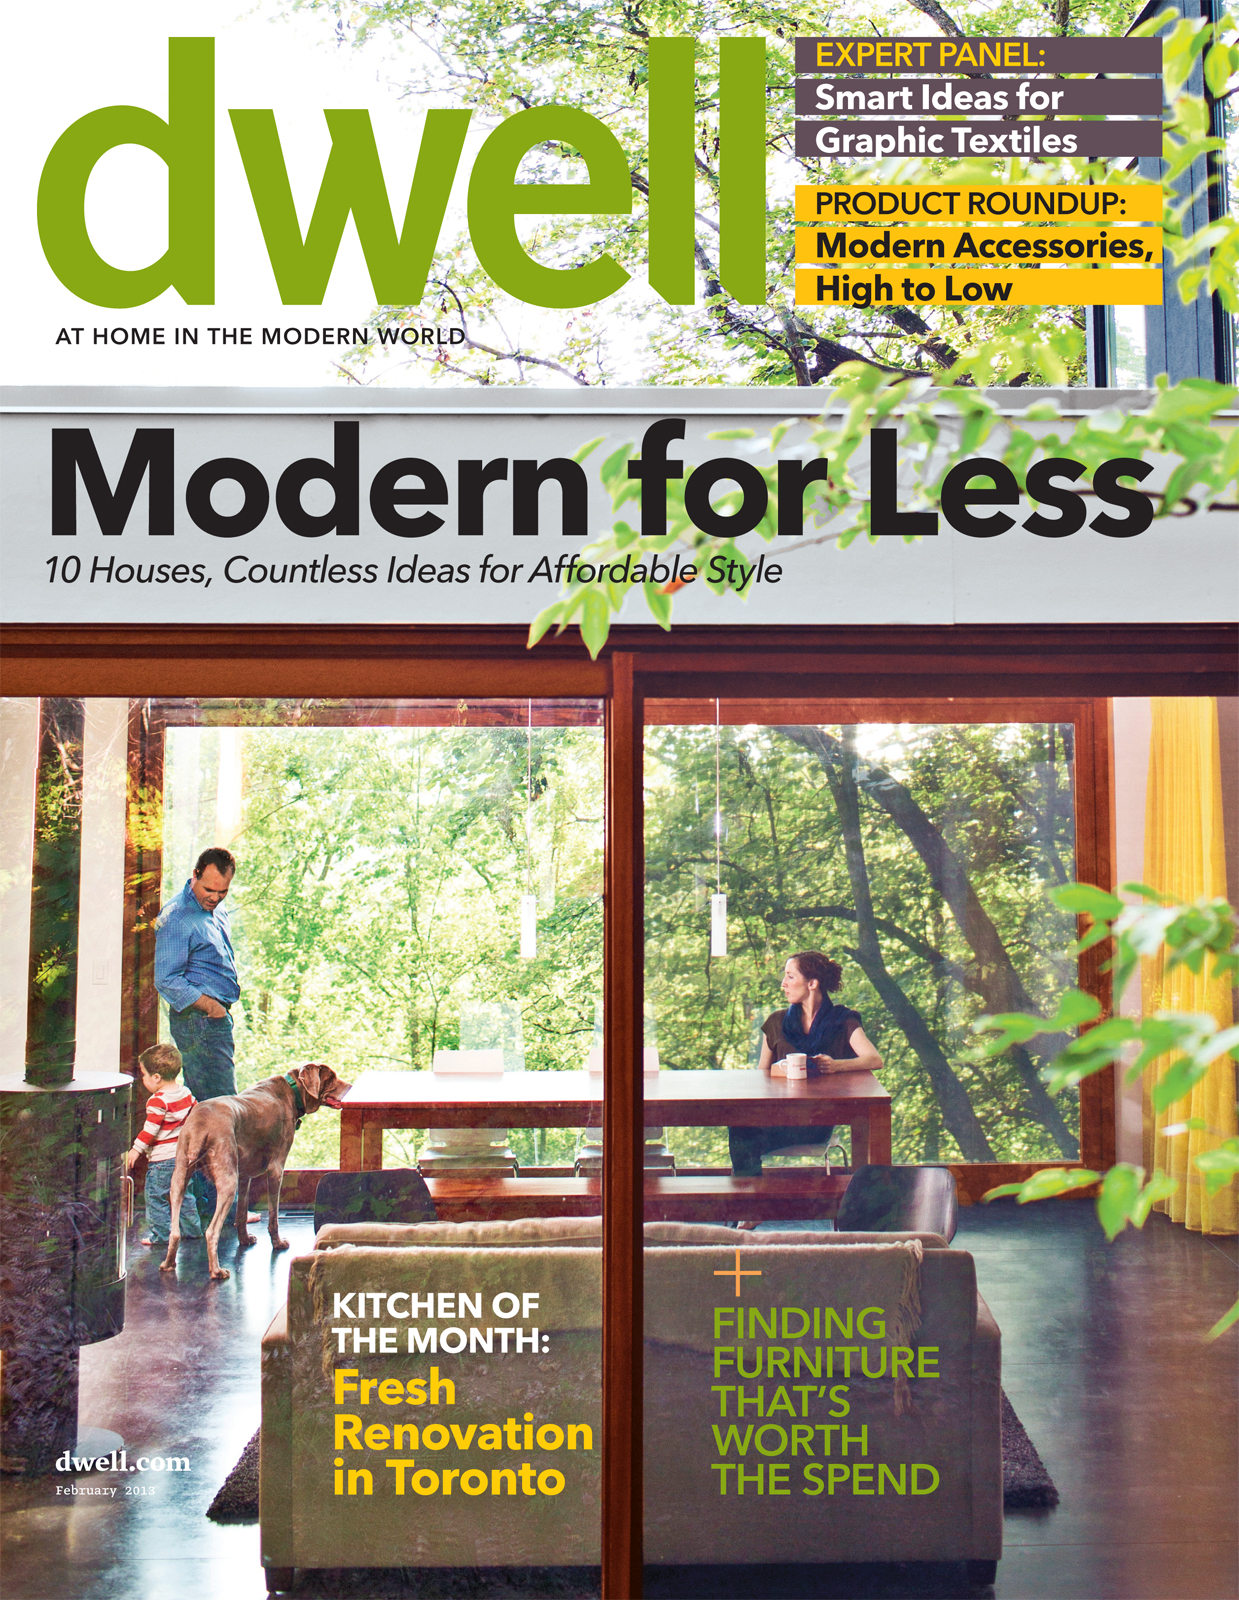 Dwell magazine February 2013 cover